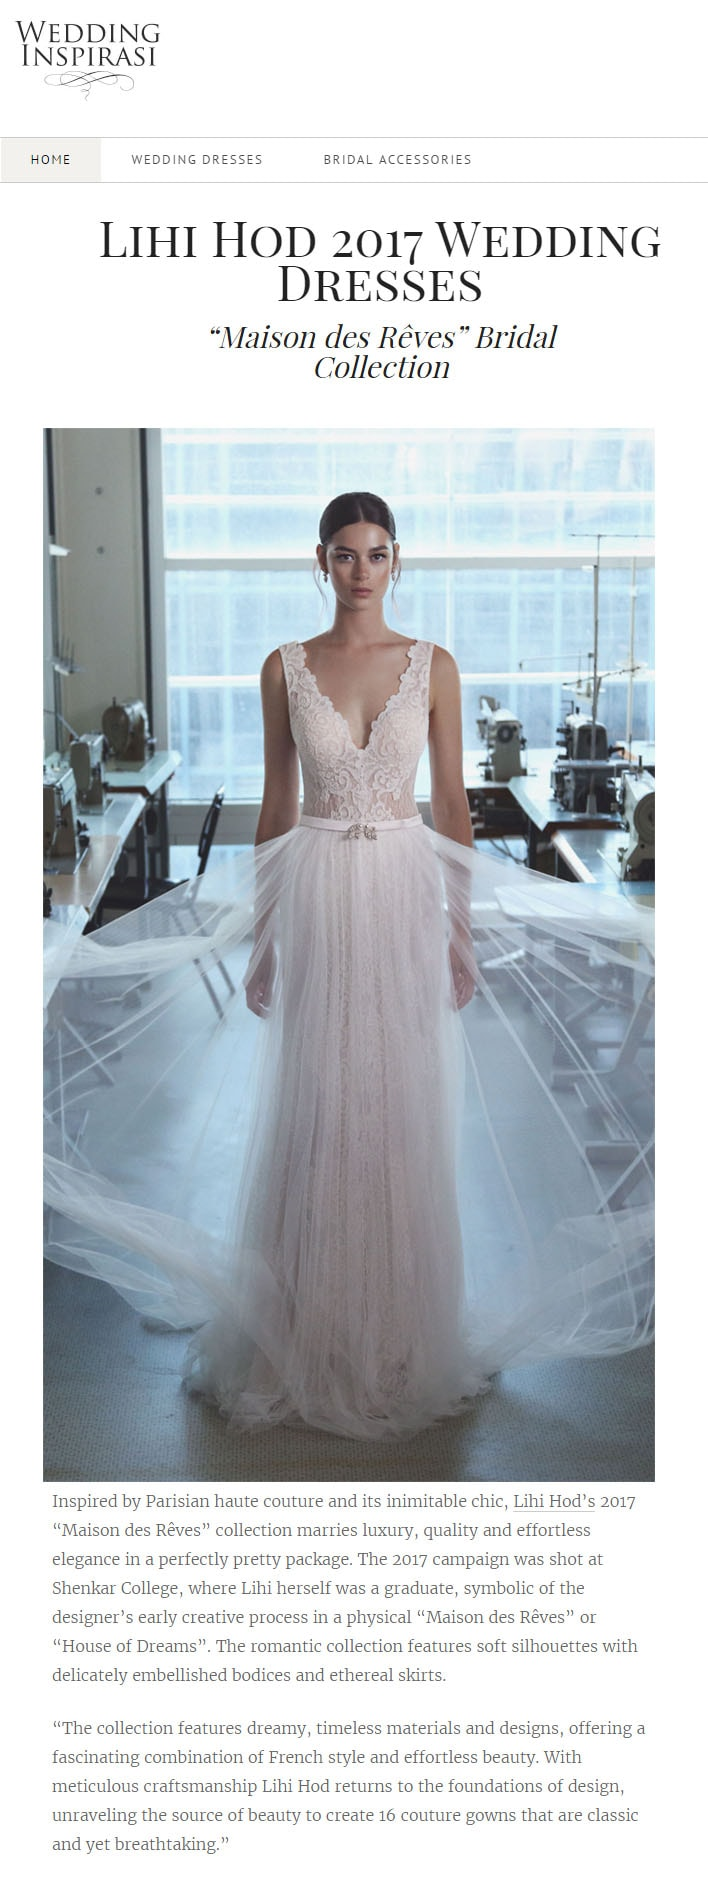 Wedding Inspirasi: LIHI HOD 2017 WEDDING  DRESSES